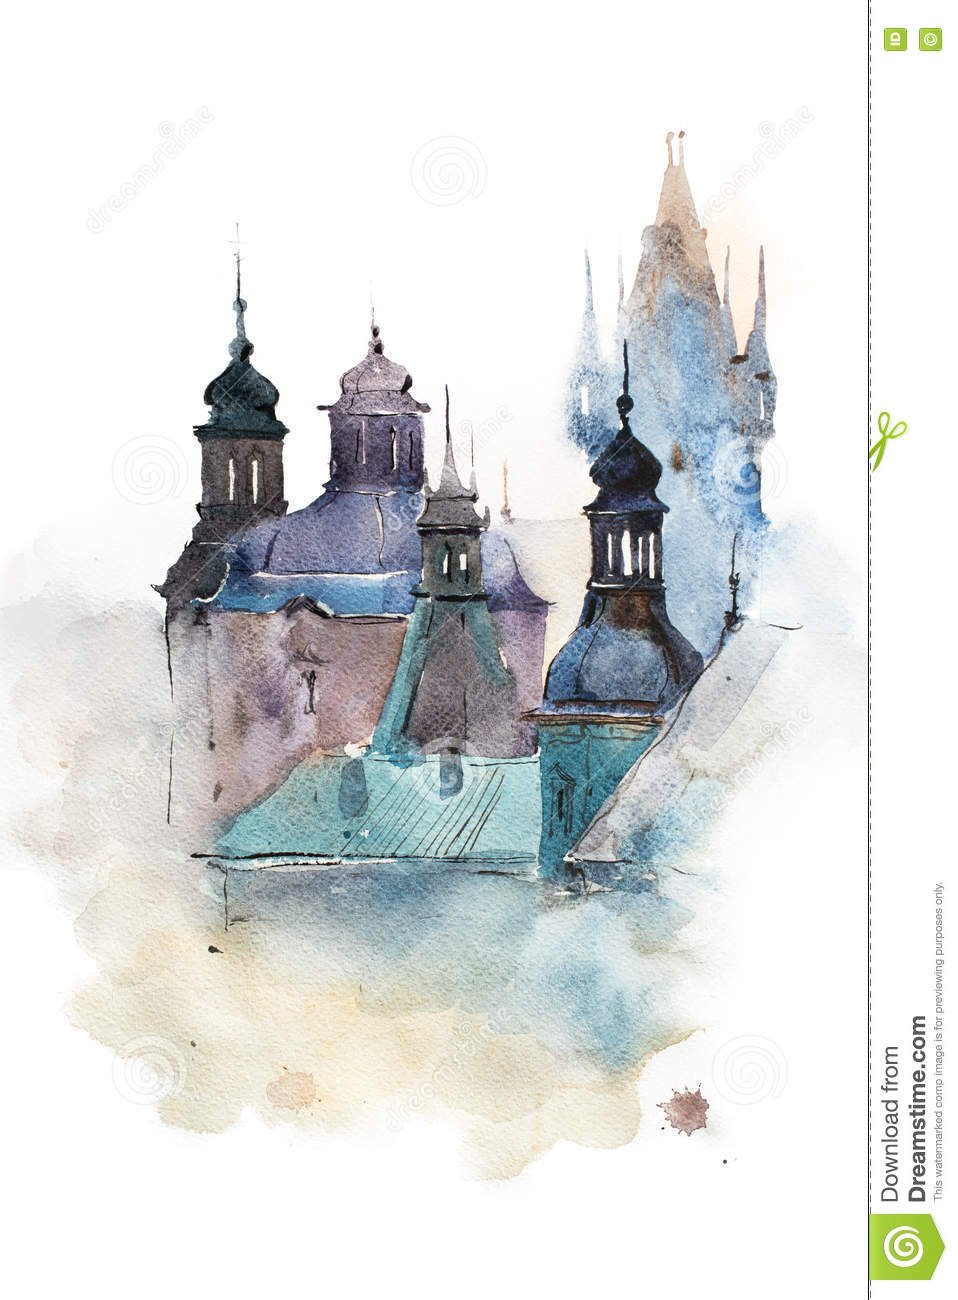 Image Aquarelle cityscape watercolor drawing, hand drawn aquarelle painting. stock